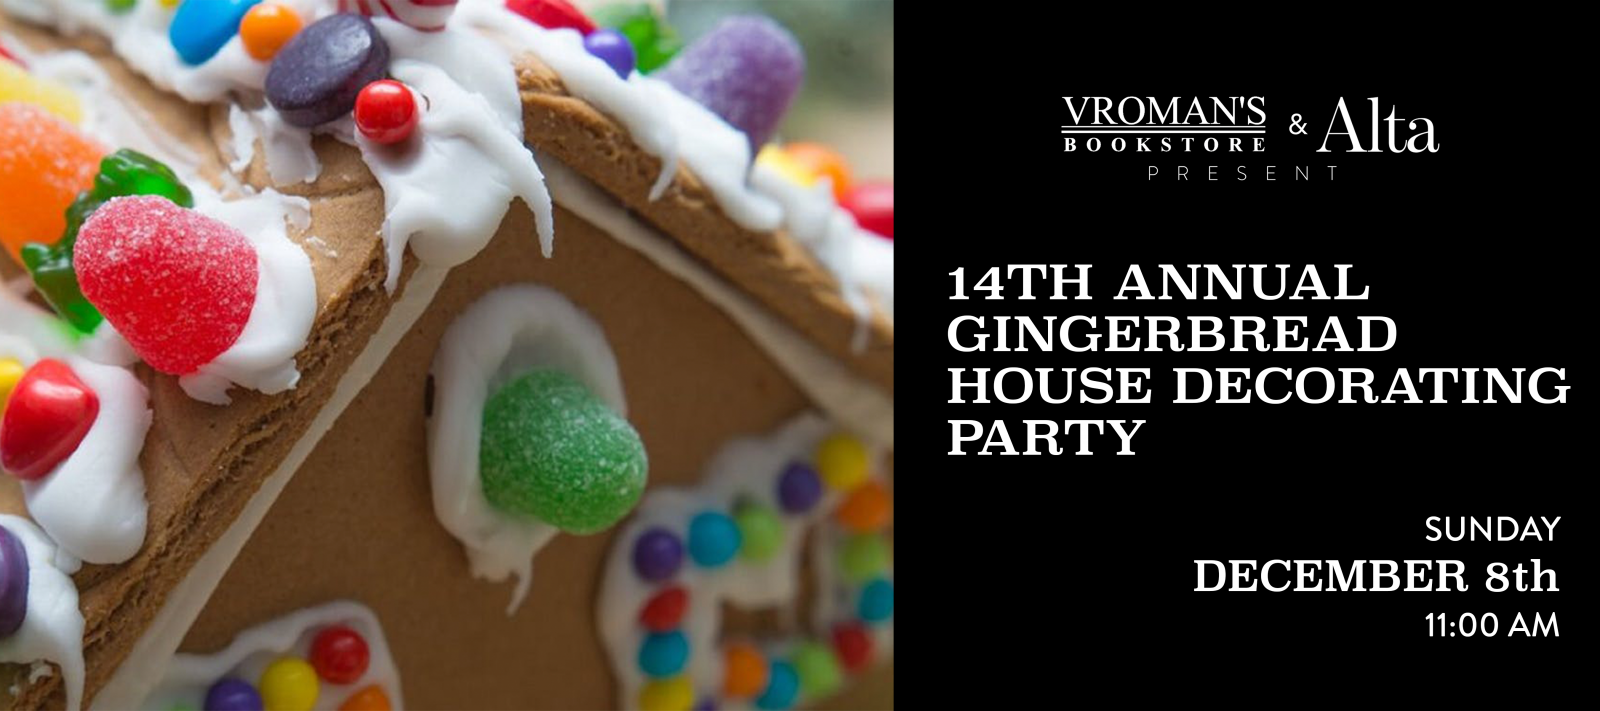 14th Annual Gingerbread House Decorating Party Sunday, December 8th at 11am